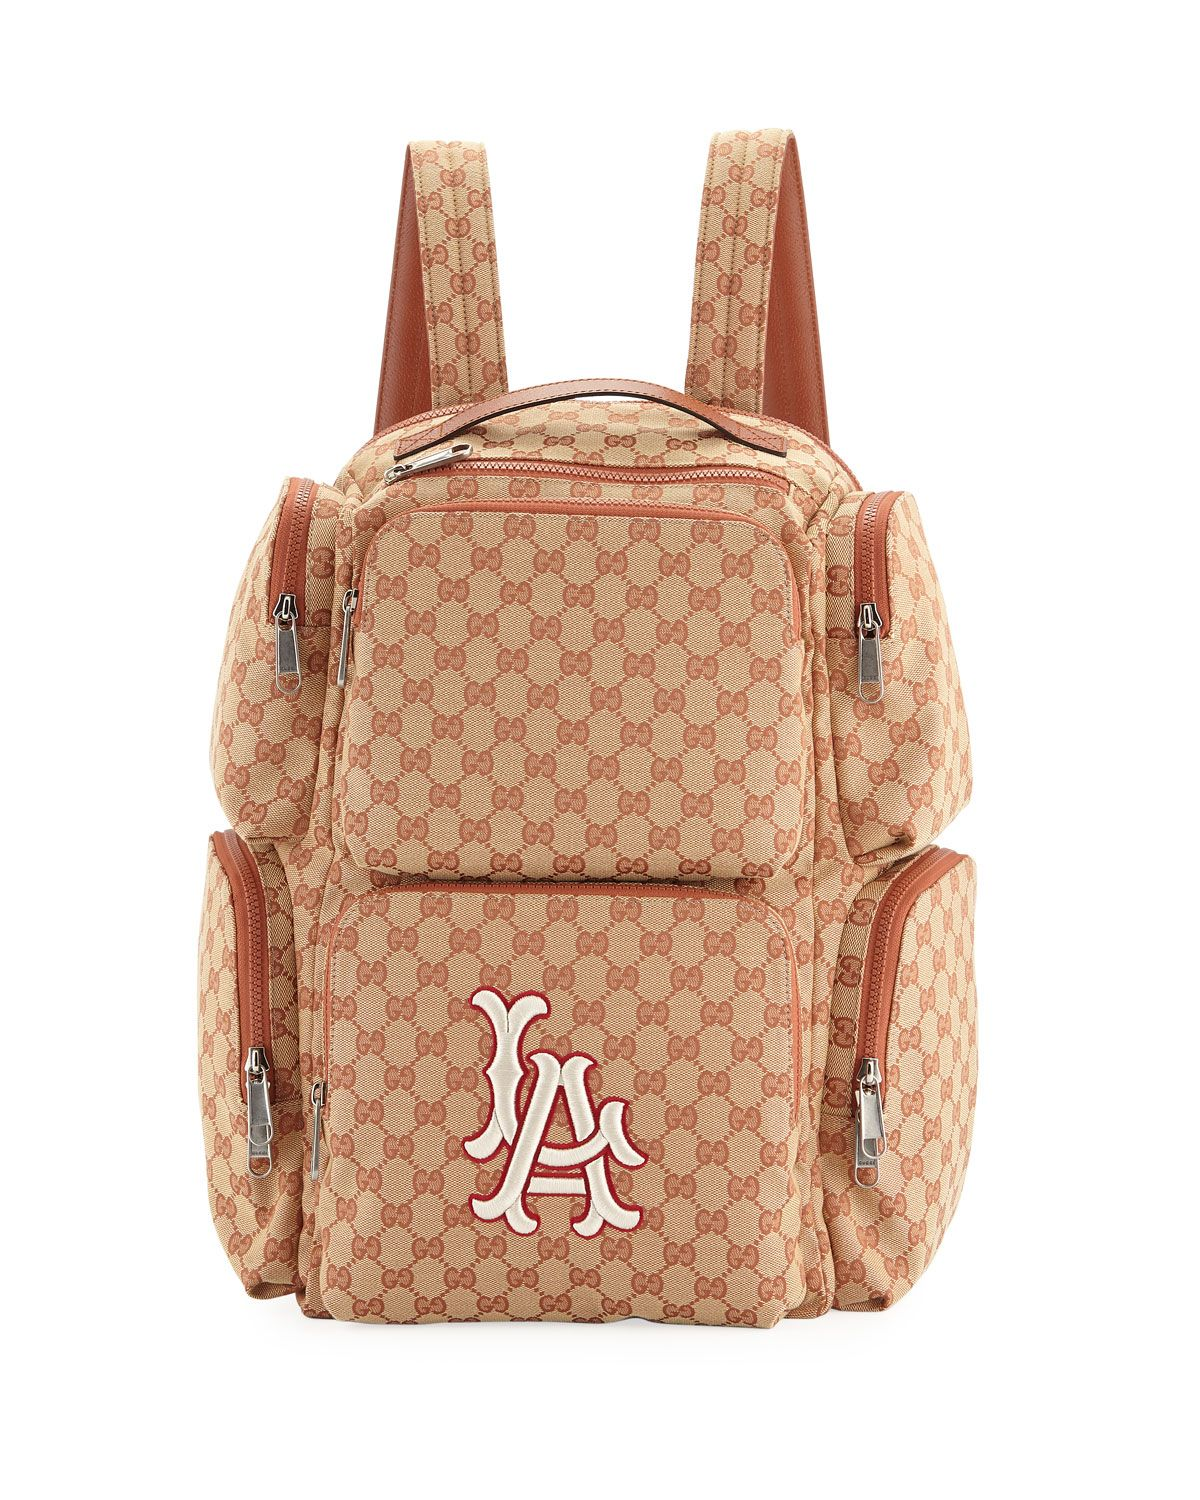 11718f38c9e3 GUCCI MEN S LARGE ORIGINAL GG BACKPACK WITH LA ANGELS MLB APPLIQUE.  gucci   bags  lining  canvas  nylon  backpacks